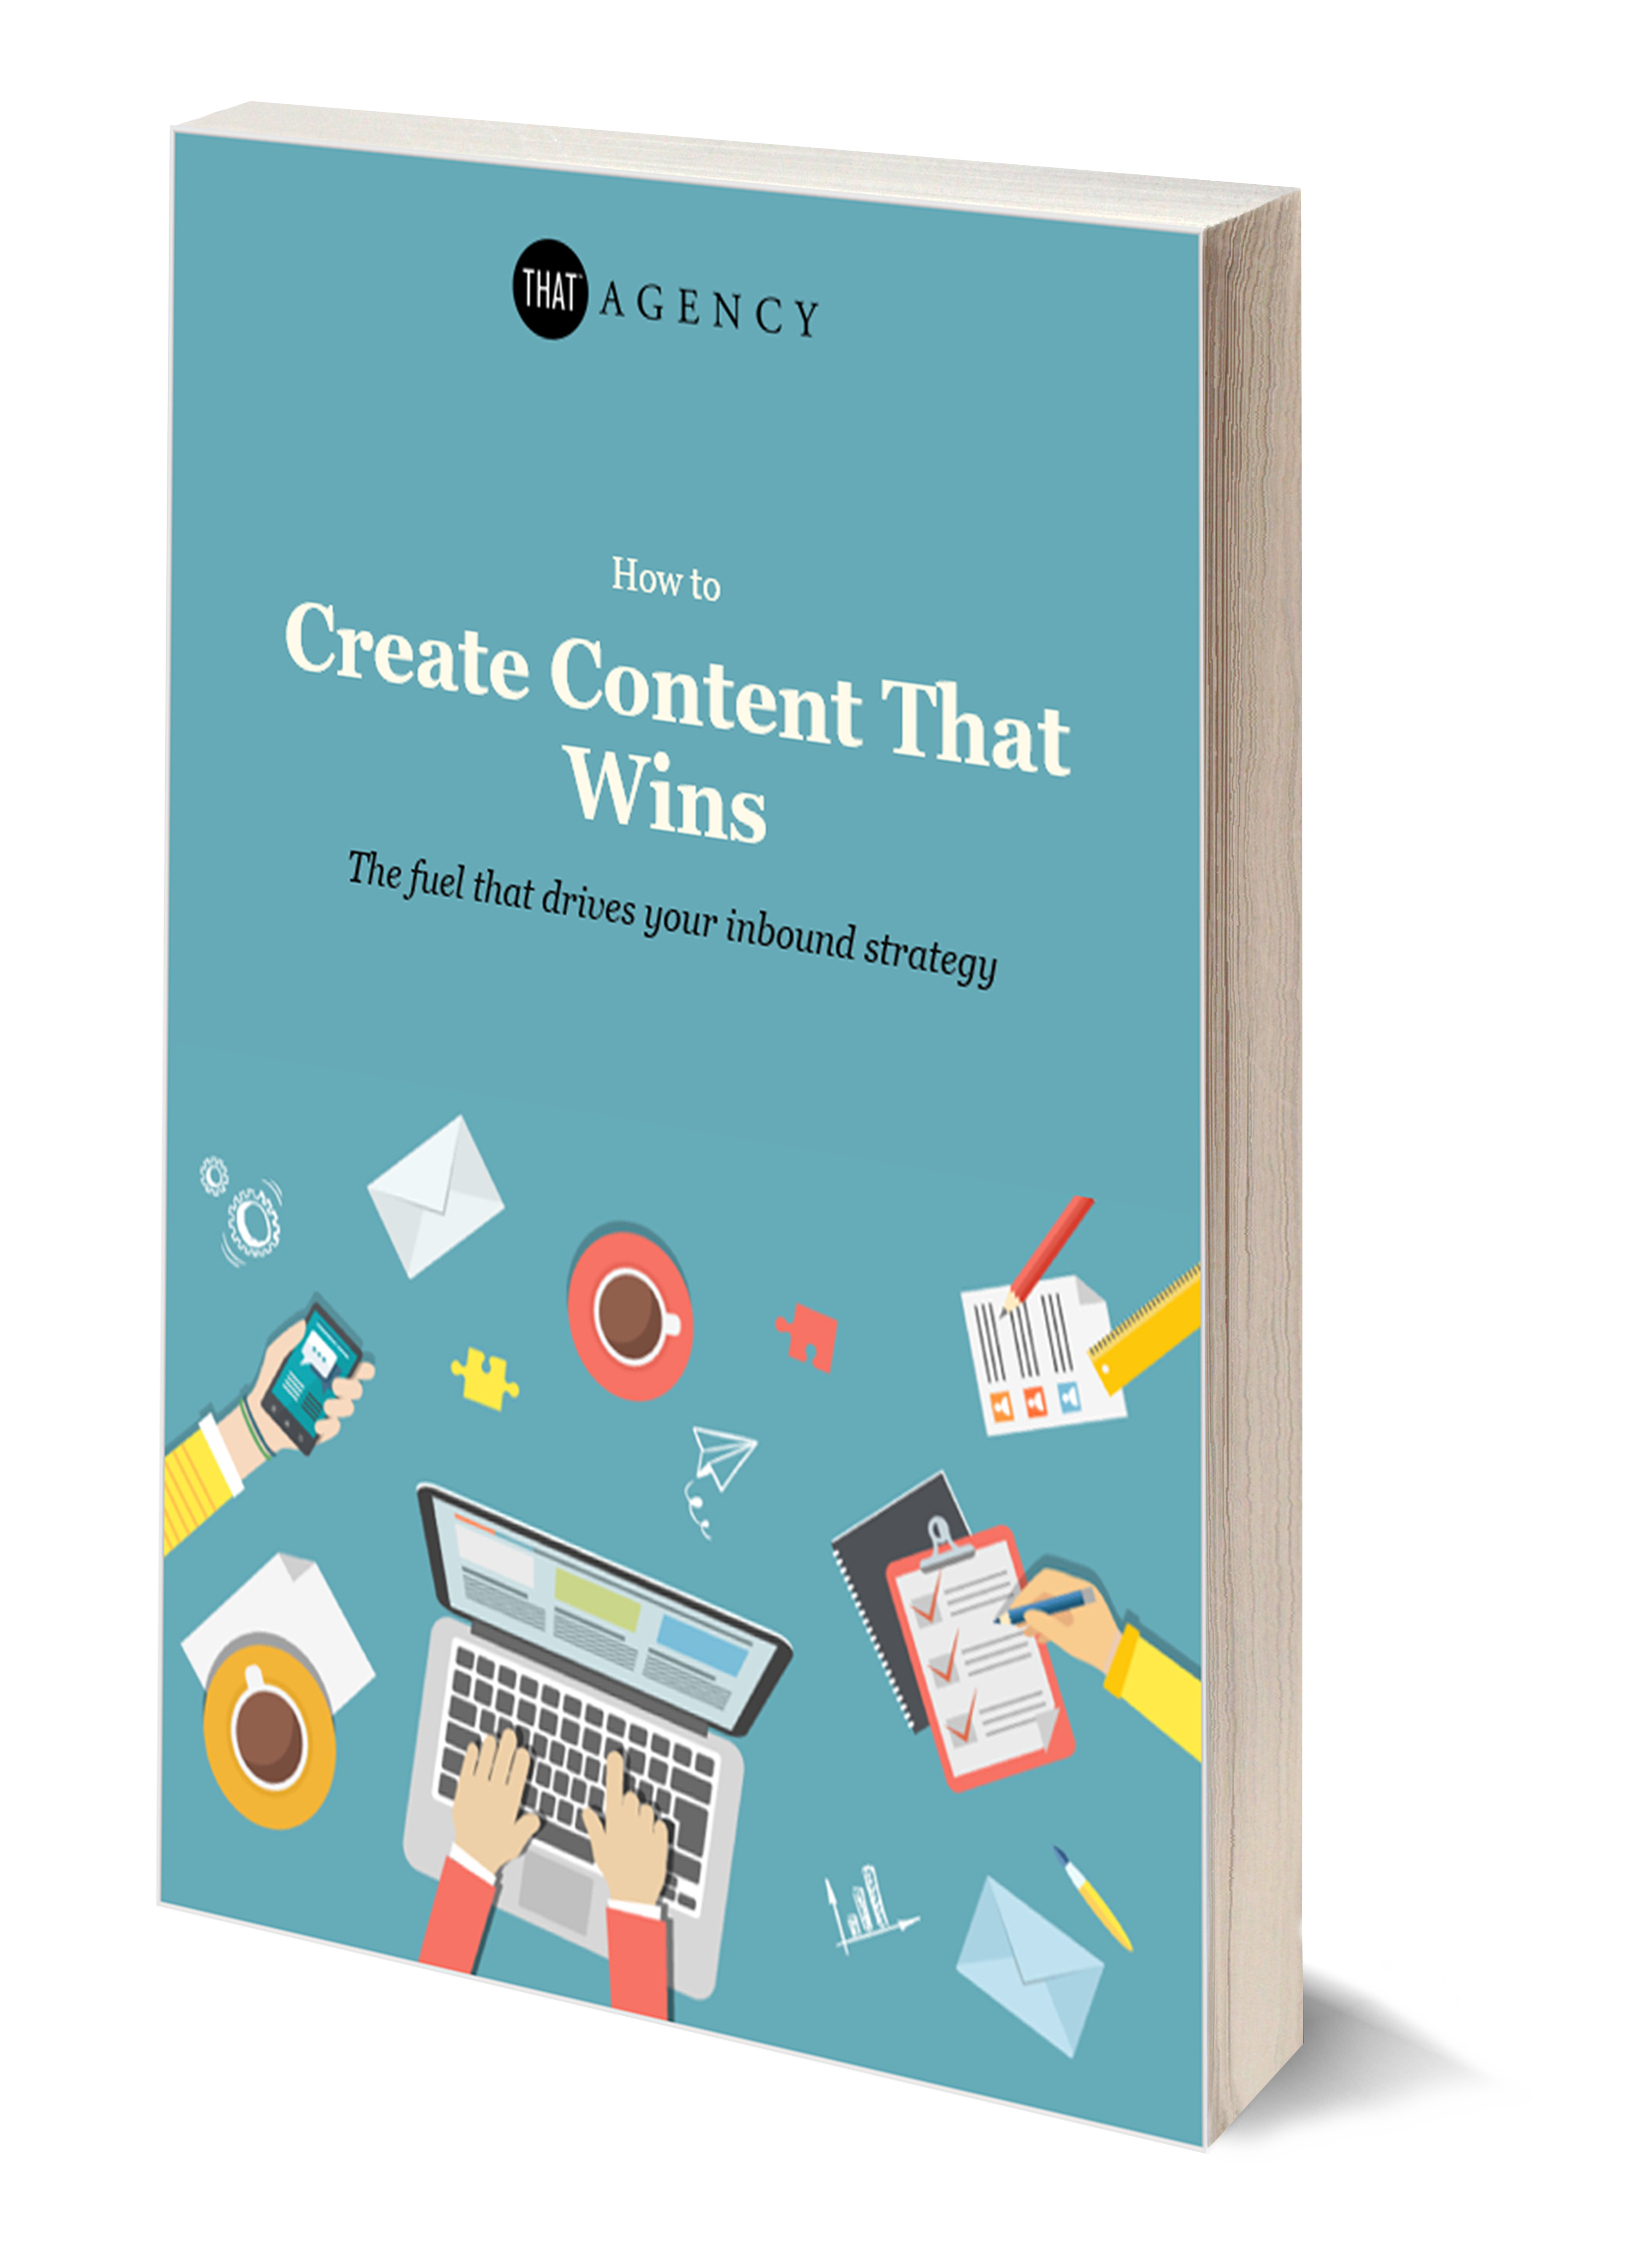 Create Content THAT Wins | THAT Agency